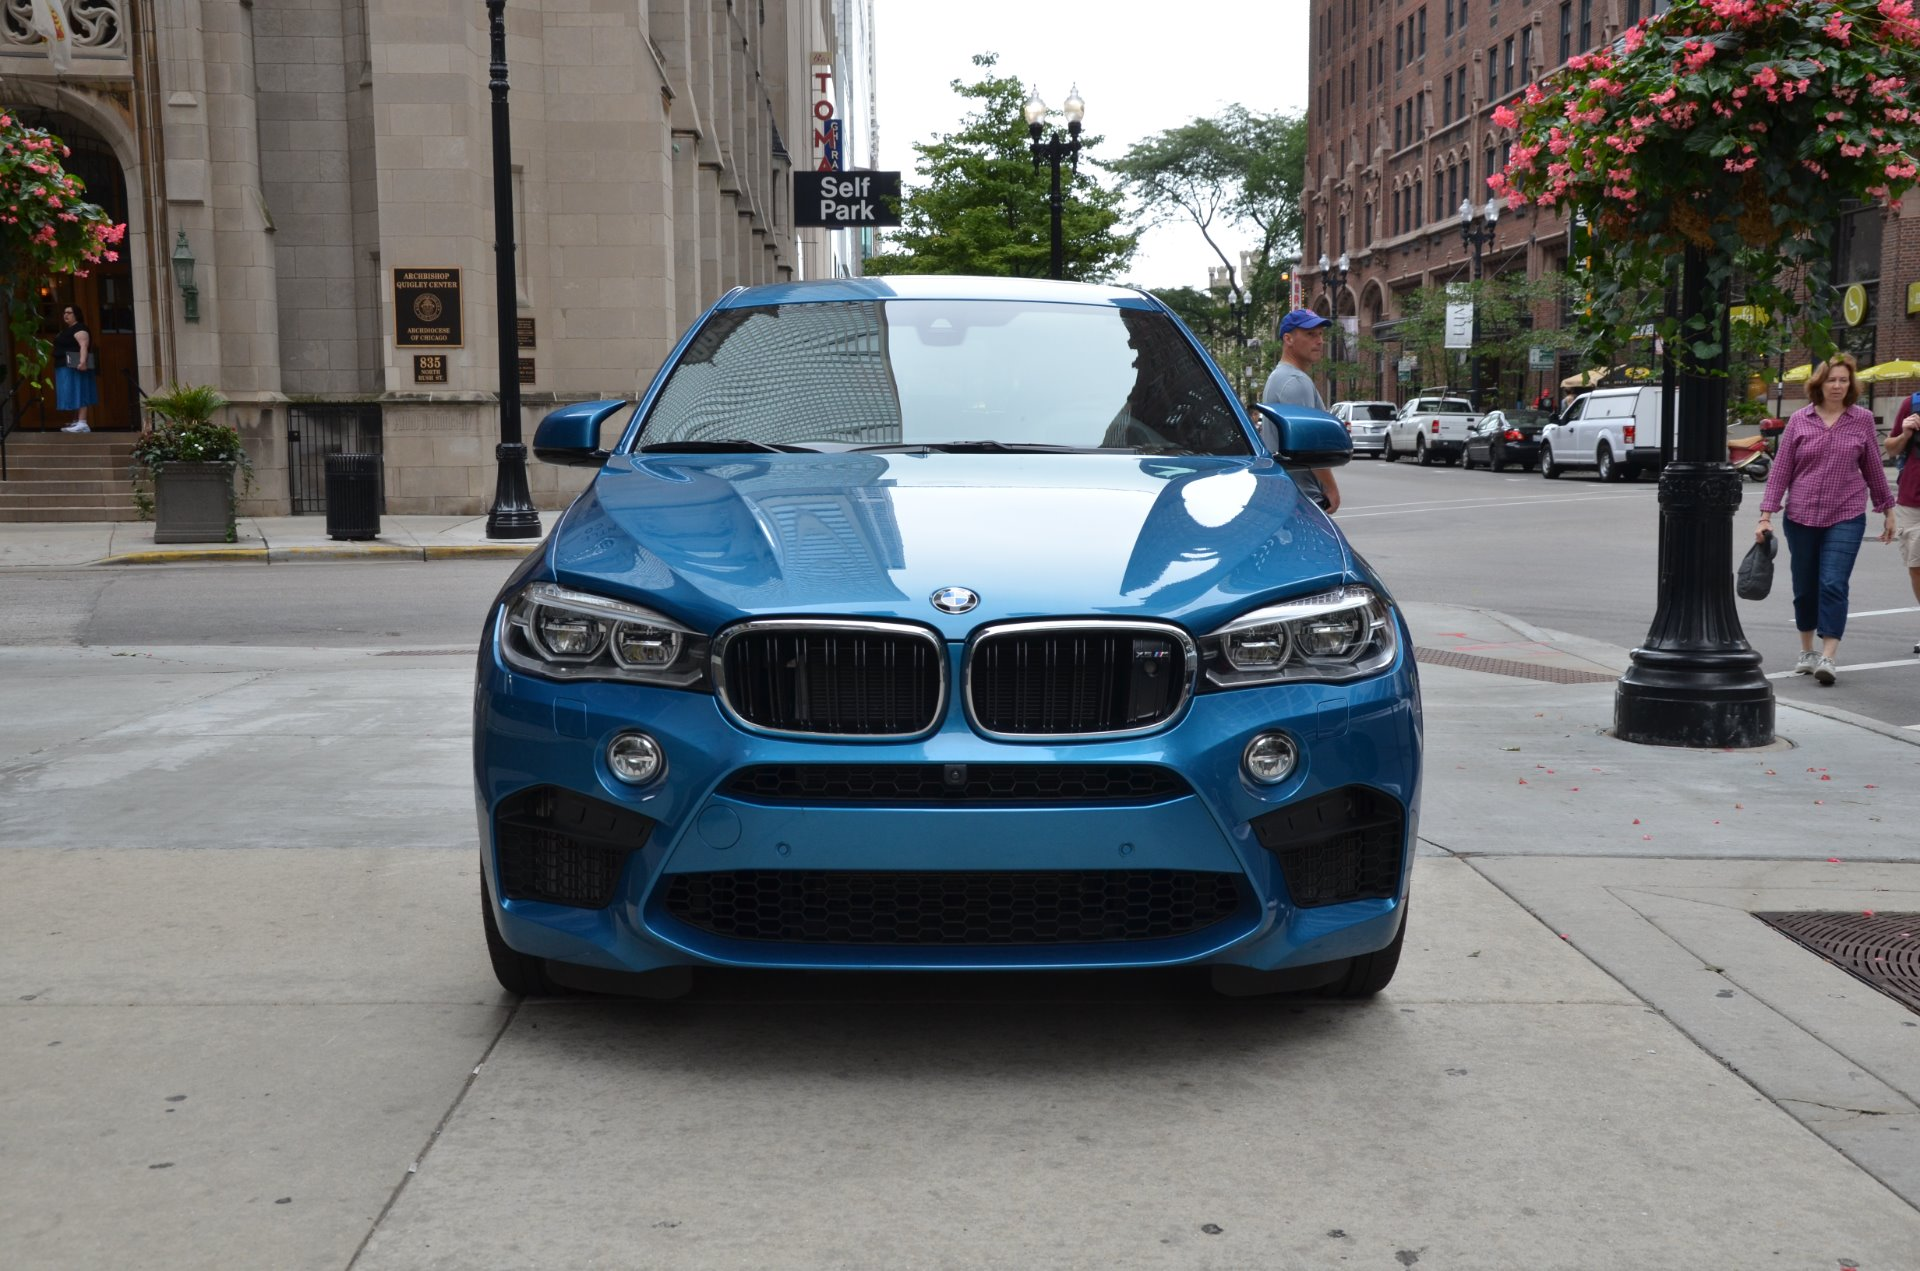 2016 bmw x6 m stock b825a for sale near chicago il il bmw dealer. Black Bedroom Furniture Sets. Home Design Ideas